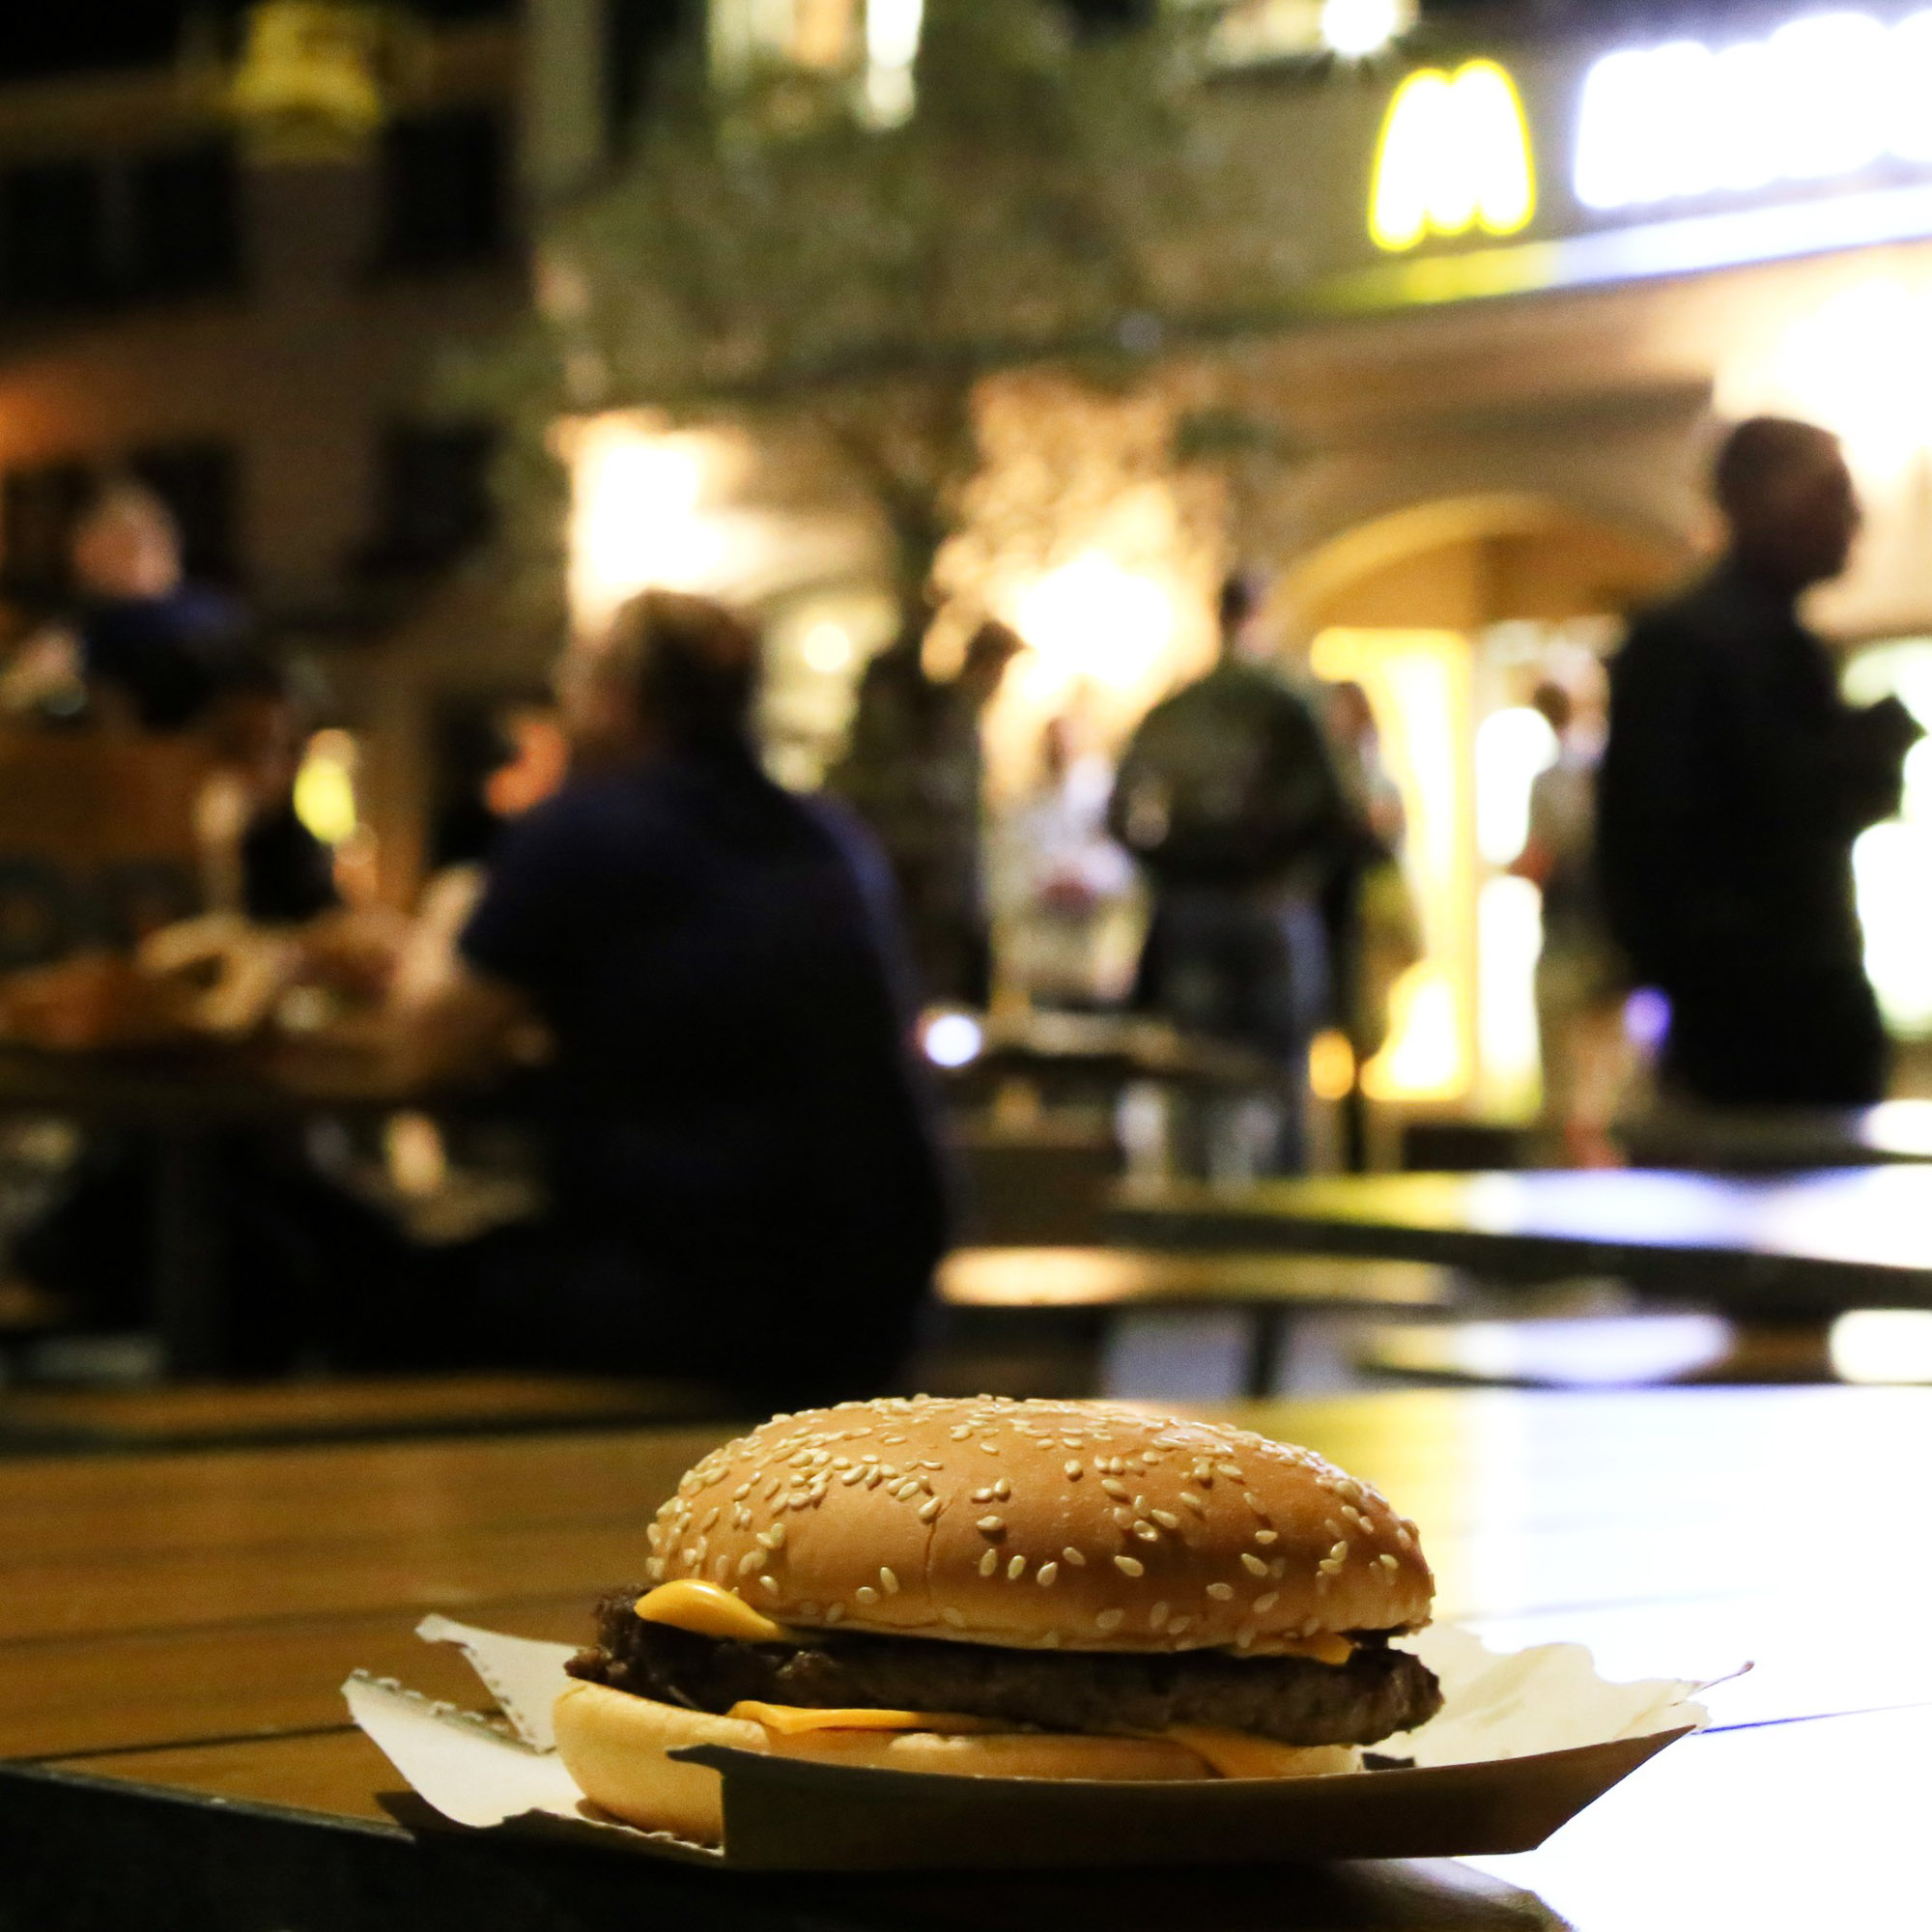 ylz / You know what they call a Quarter Pounder with Cheese in Paris?